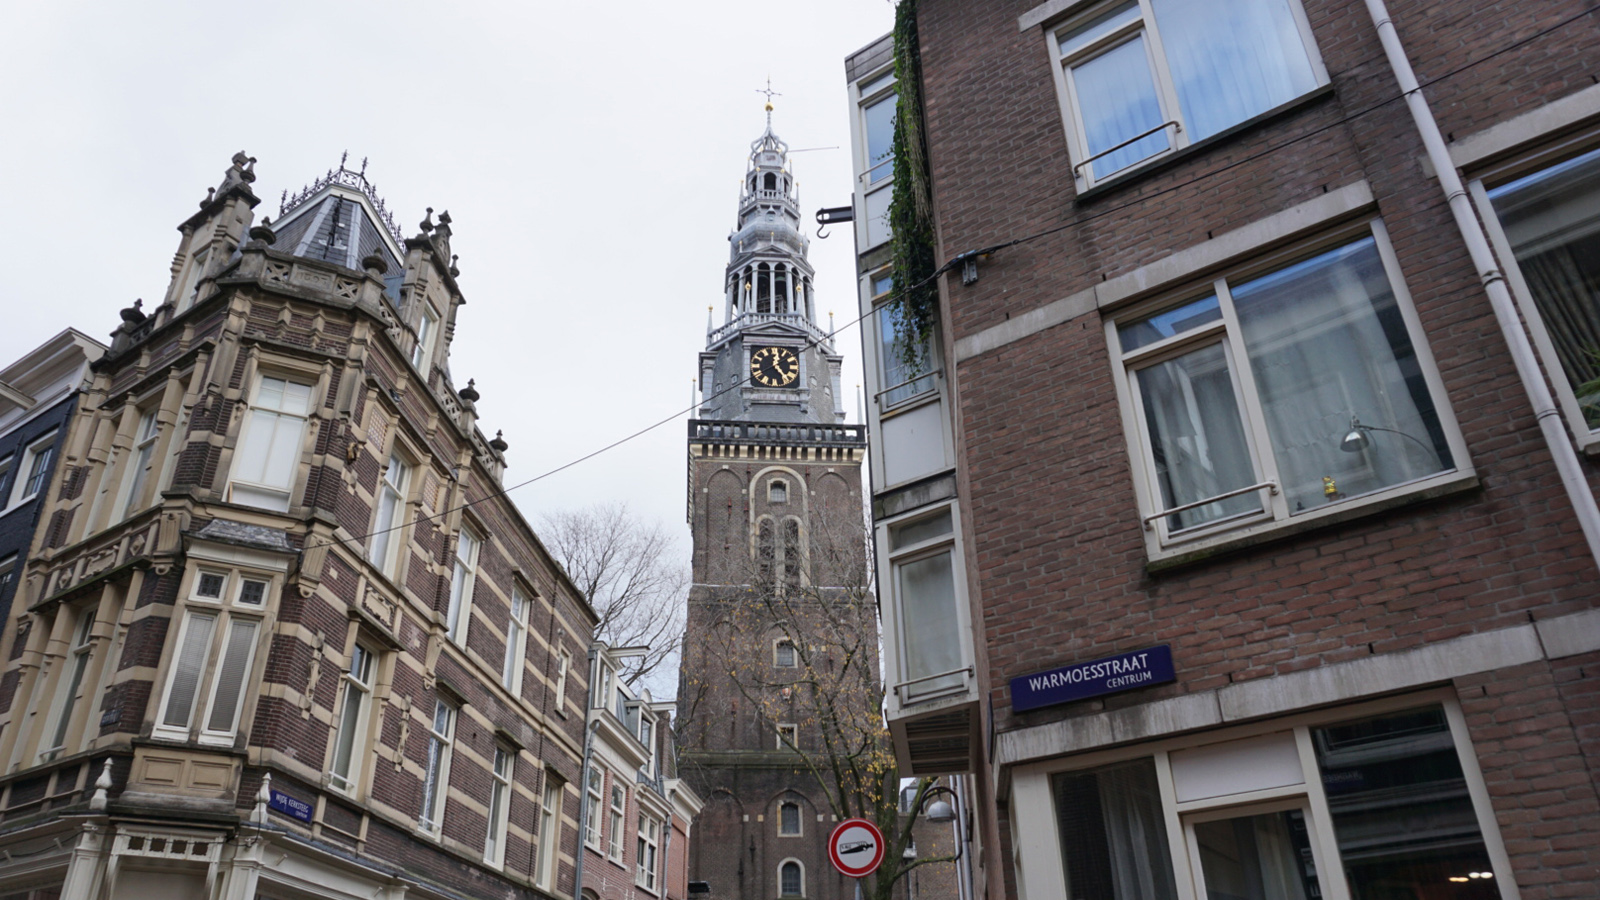 warmoesstraat-old-church-amsterdam-holland-miniaturist